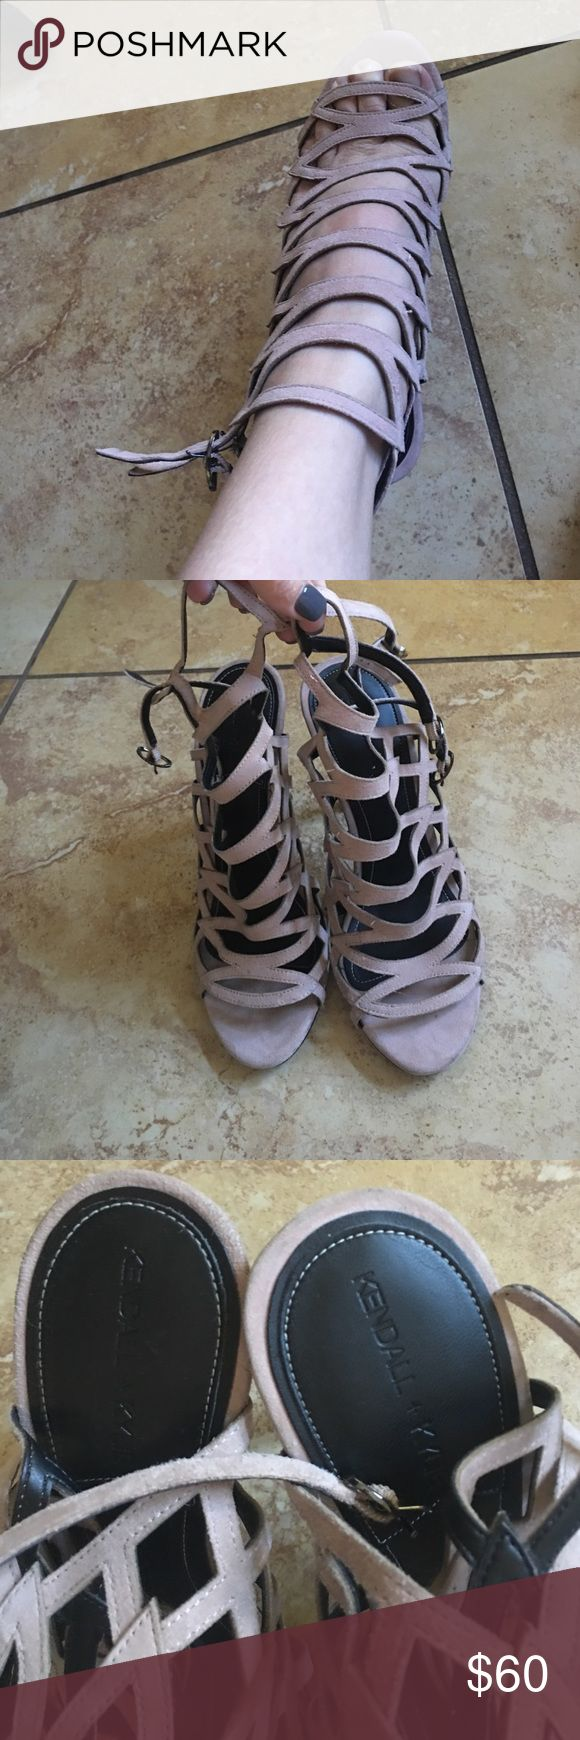 Kendall and Kylie sexy heels Excellent condition Kendall and Kylie sexy heels in a size 7 very lightweight and super cute for any night out for additional pics just ask Kendall & Kylie Shoes Heels